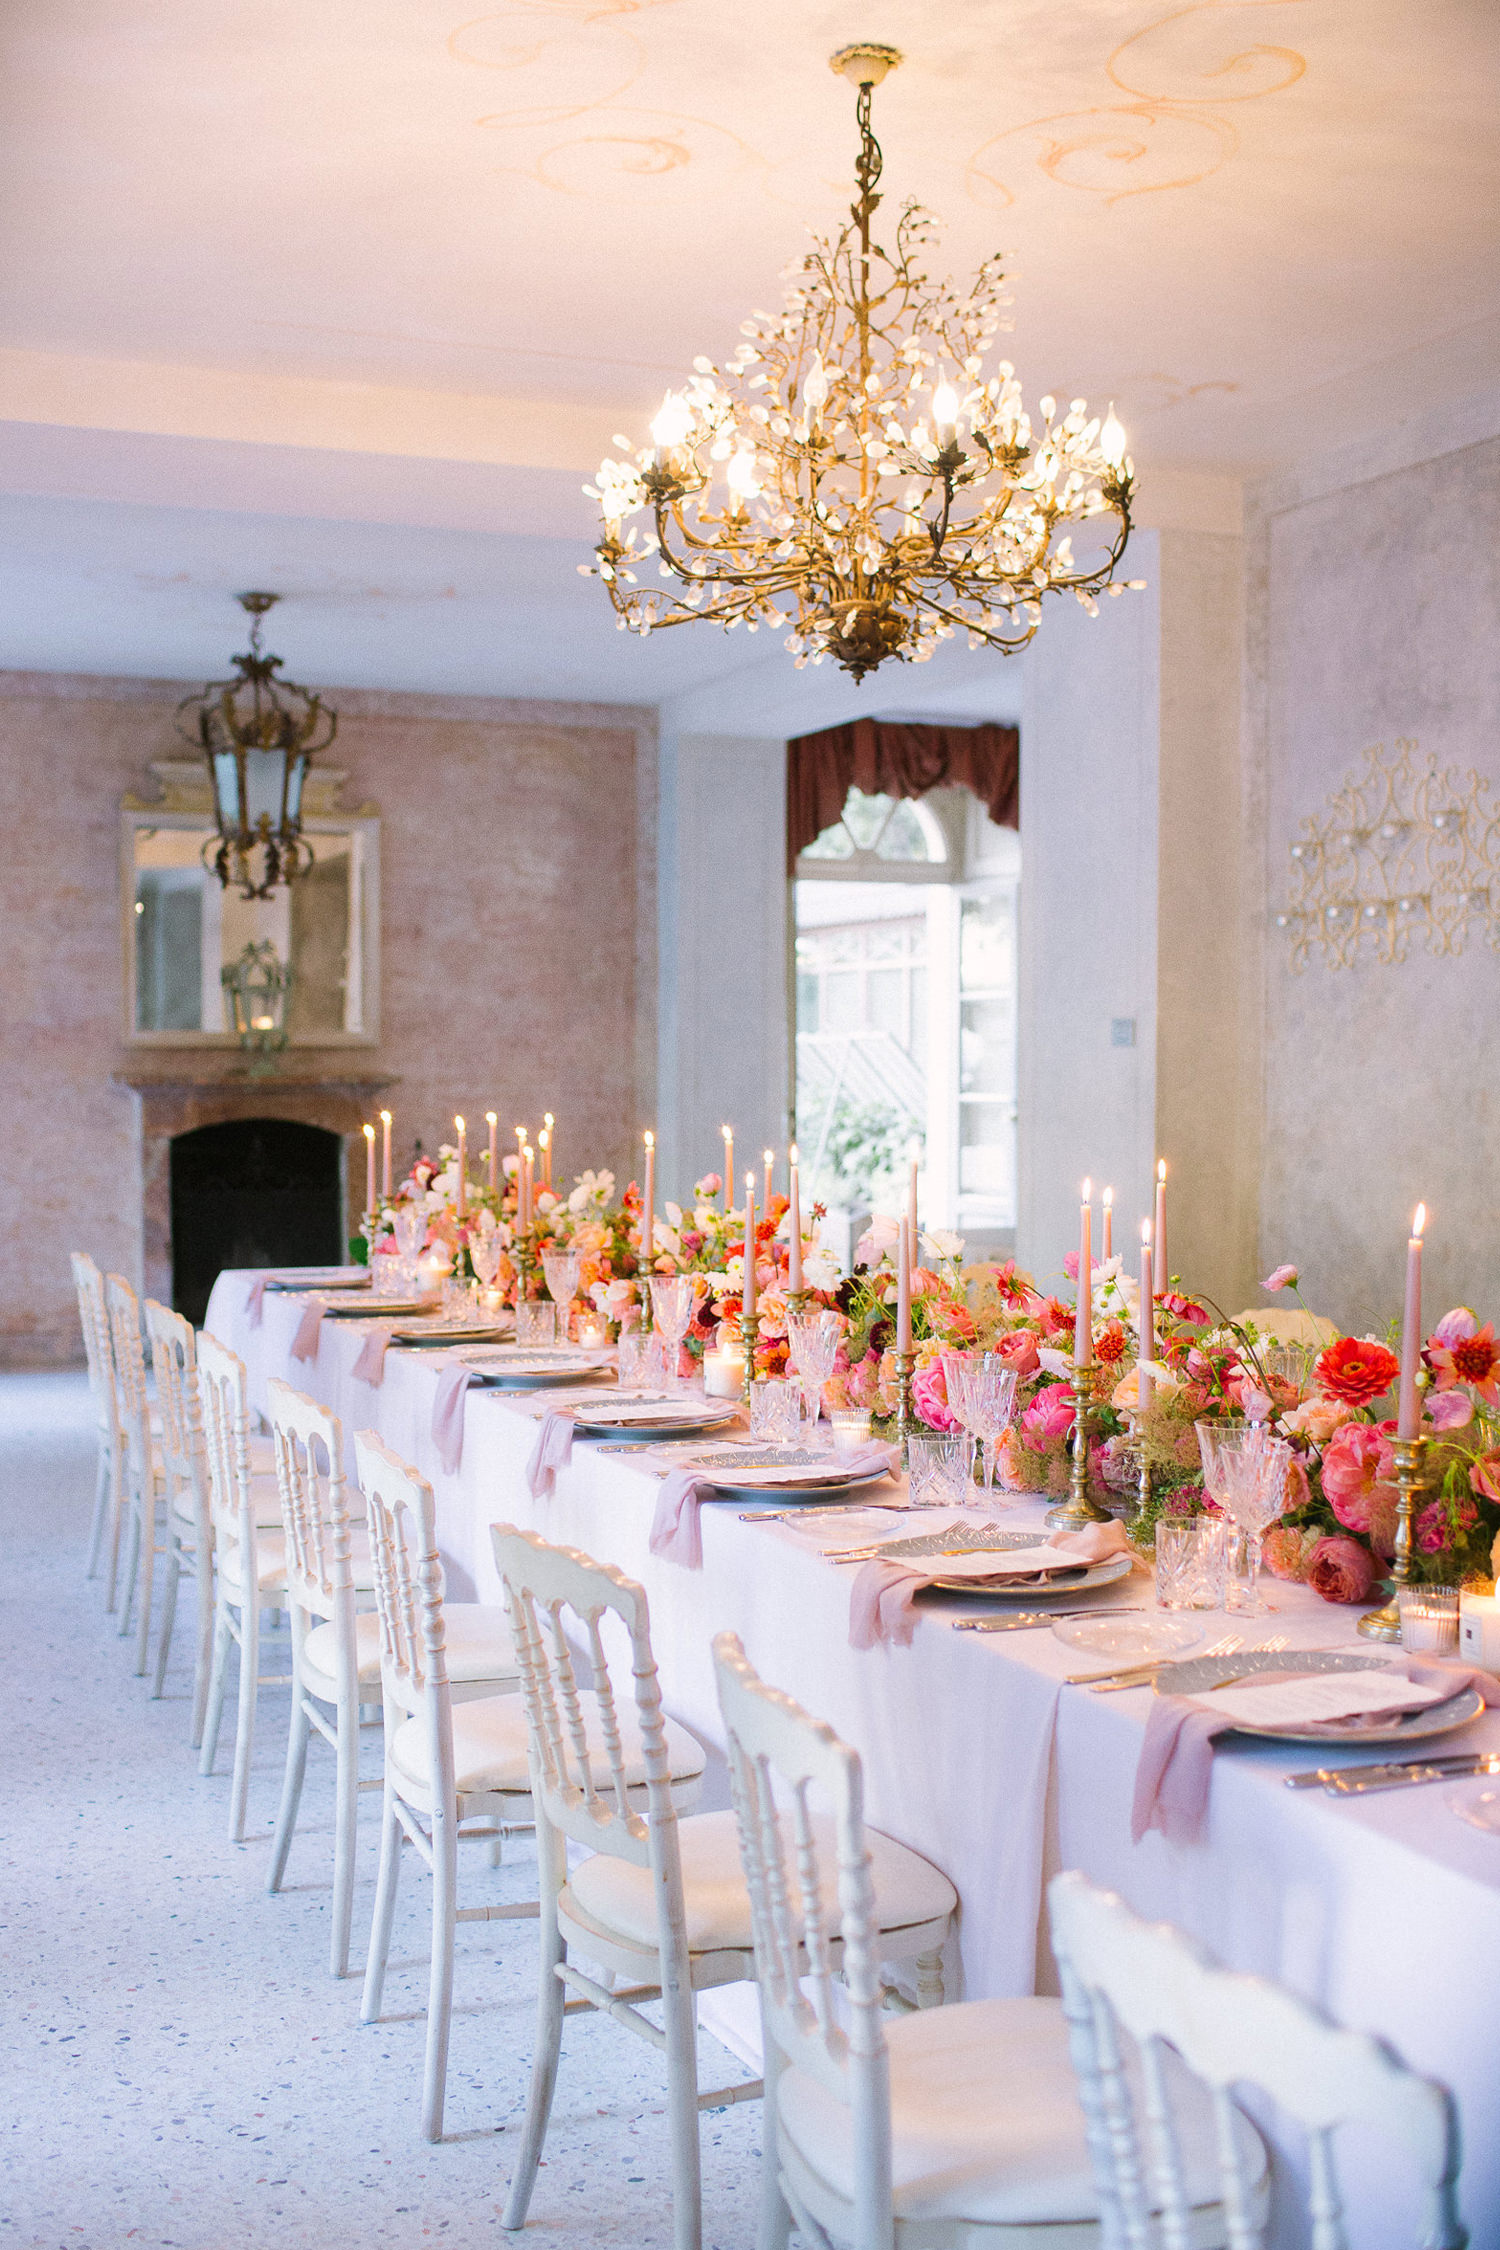 Refined wedding at Villa Regina Teodolinda, Lake Como. Imperial table with a jaw dropping floral runner and Jo Malone's candles. Destination wedding on Lake Como | Photo: Camilla Anchisi Photography | Planning: Benevent Planner | Florals: Chiara Sperti floral events